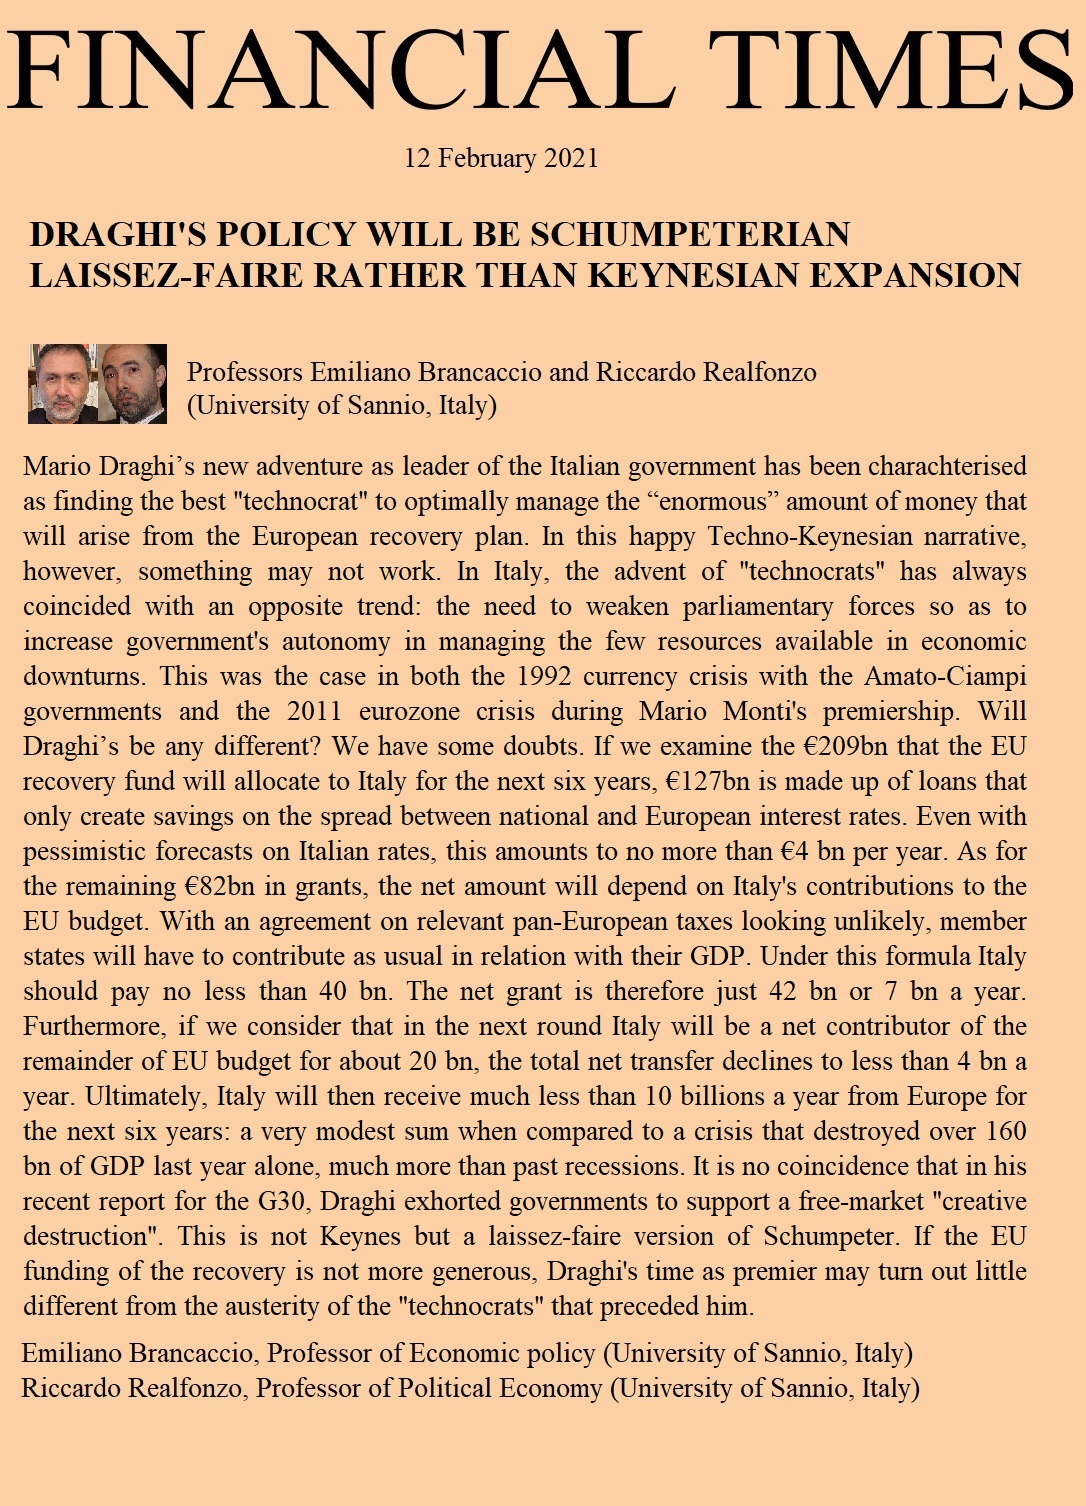 DRAGHI'S POLICY WILL BE SCHUMPETERIAN LAISSEZ-FAIRE RATHER THAN KEYNESIAN EXPANSION